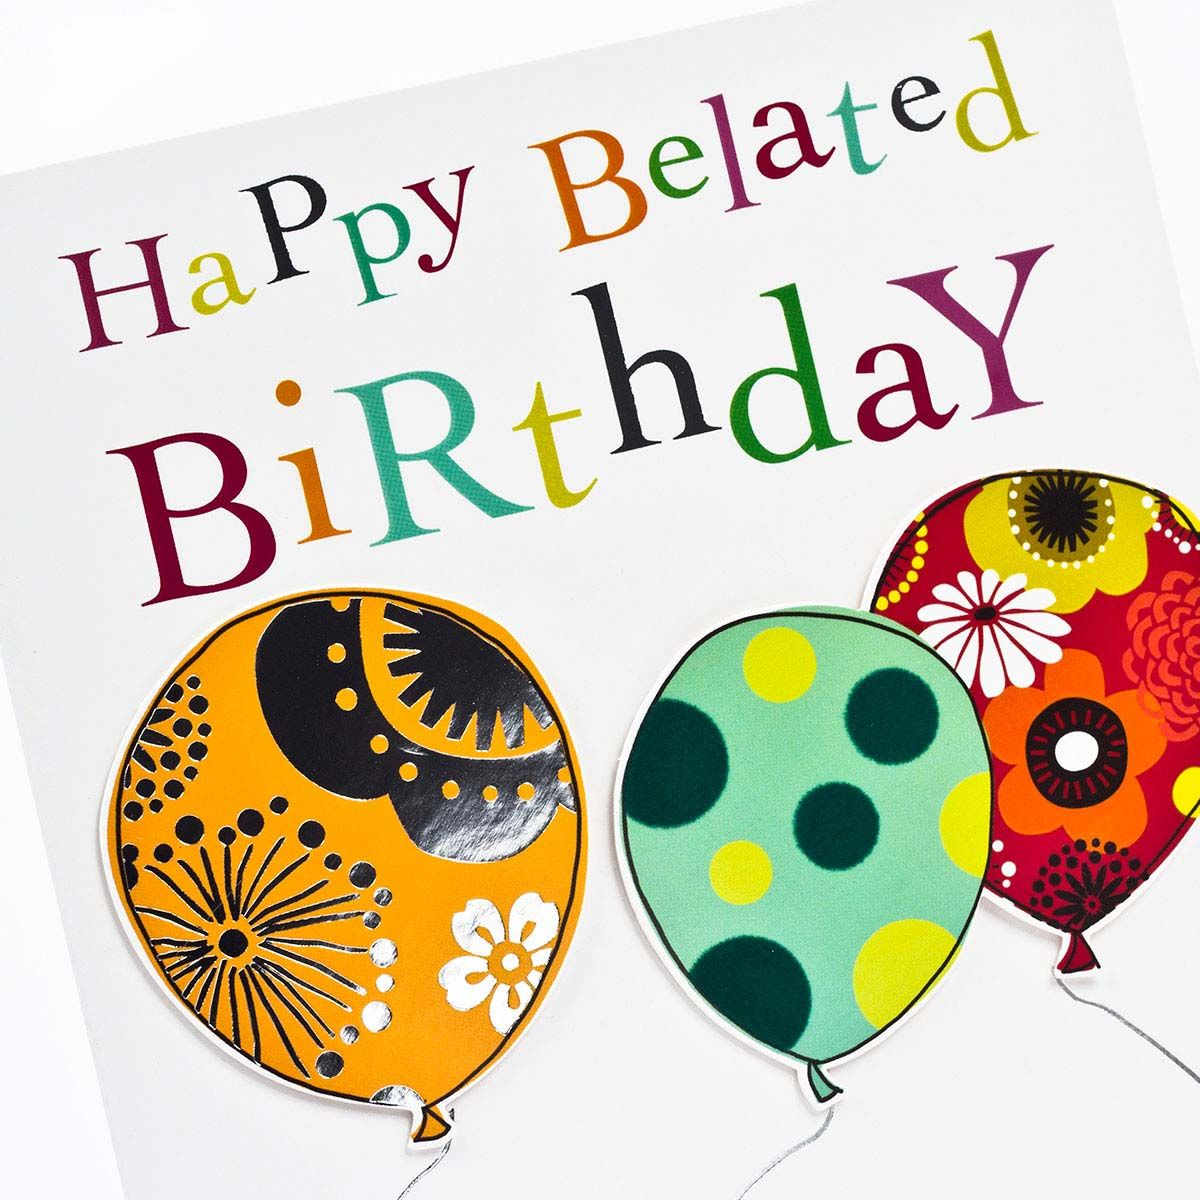 200+ Happy Belated Birthday Wishes, Messages And Images